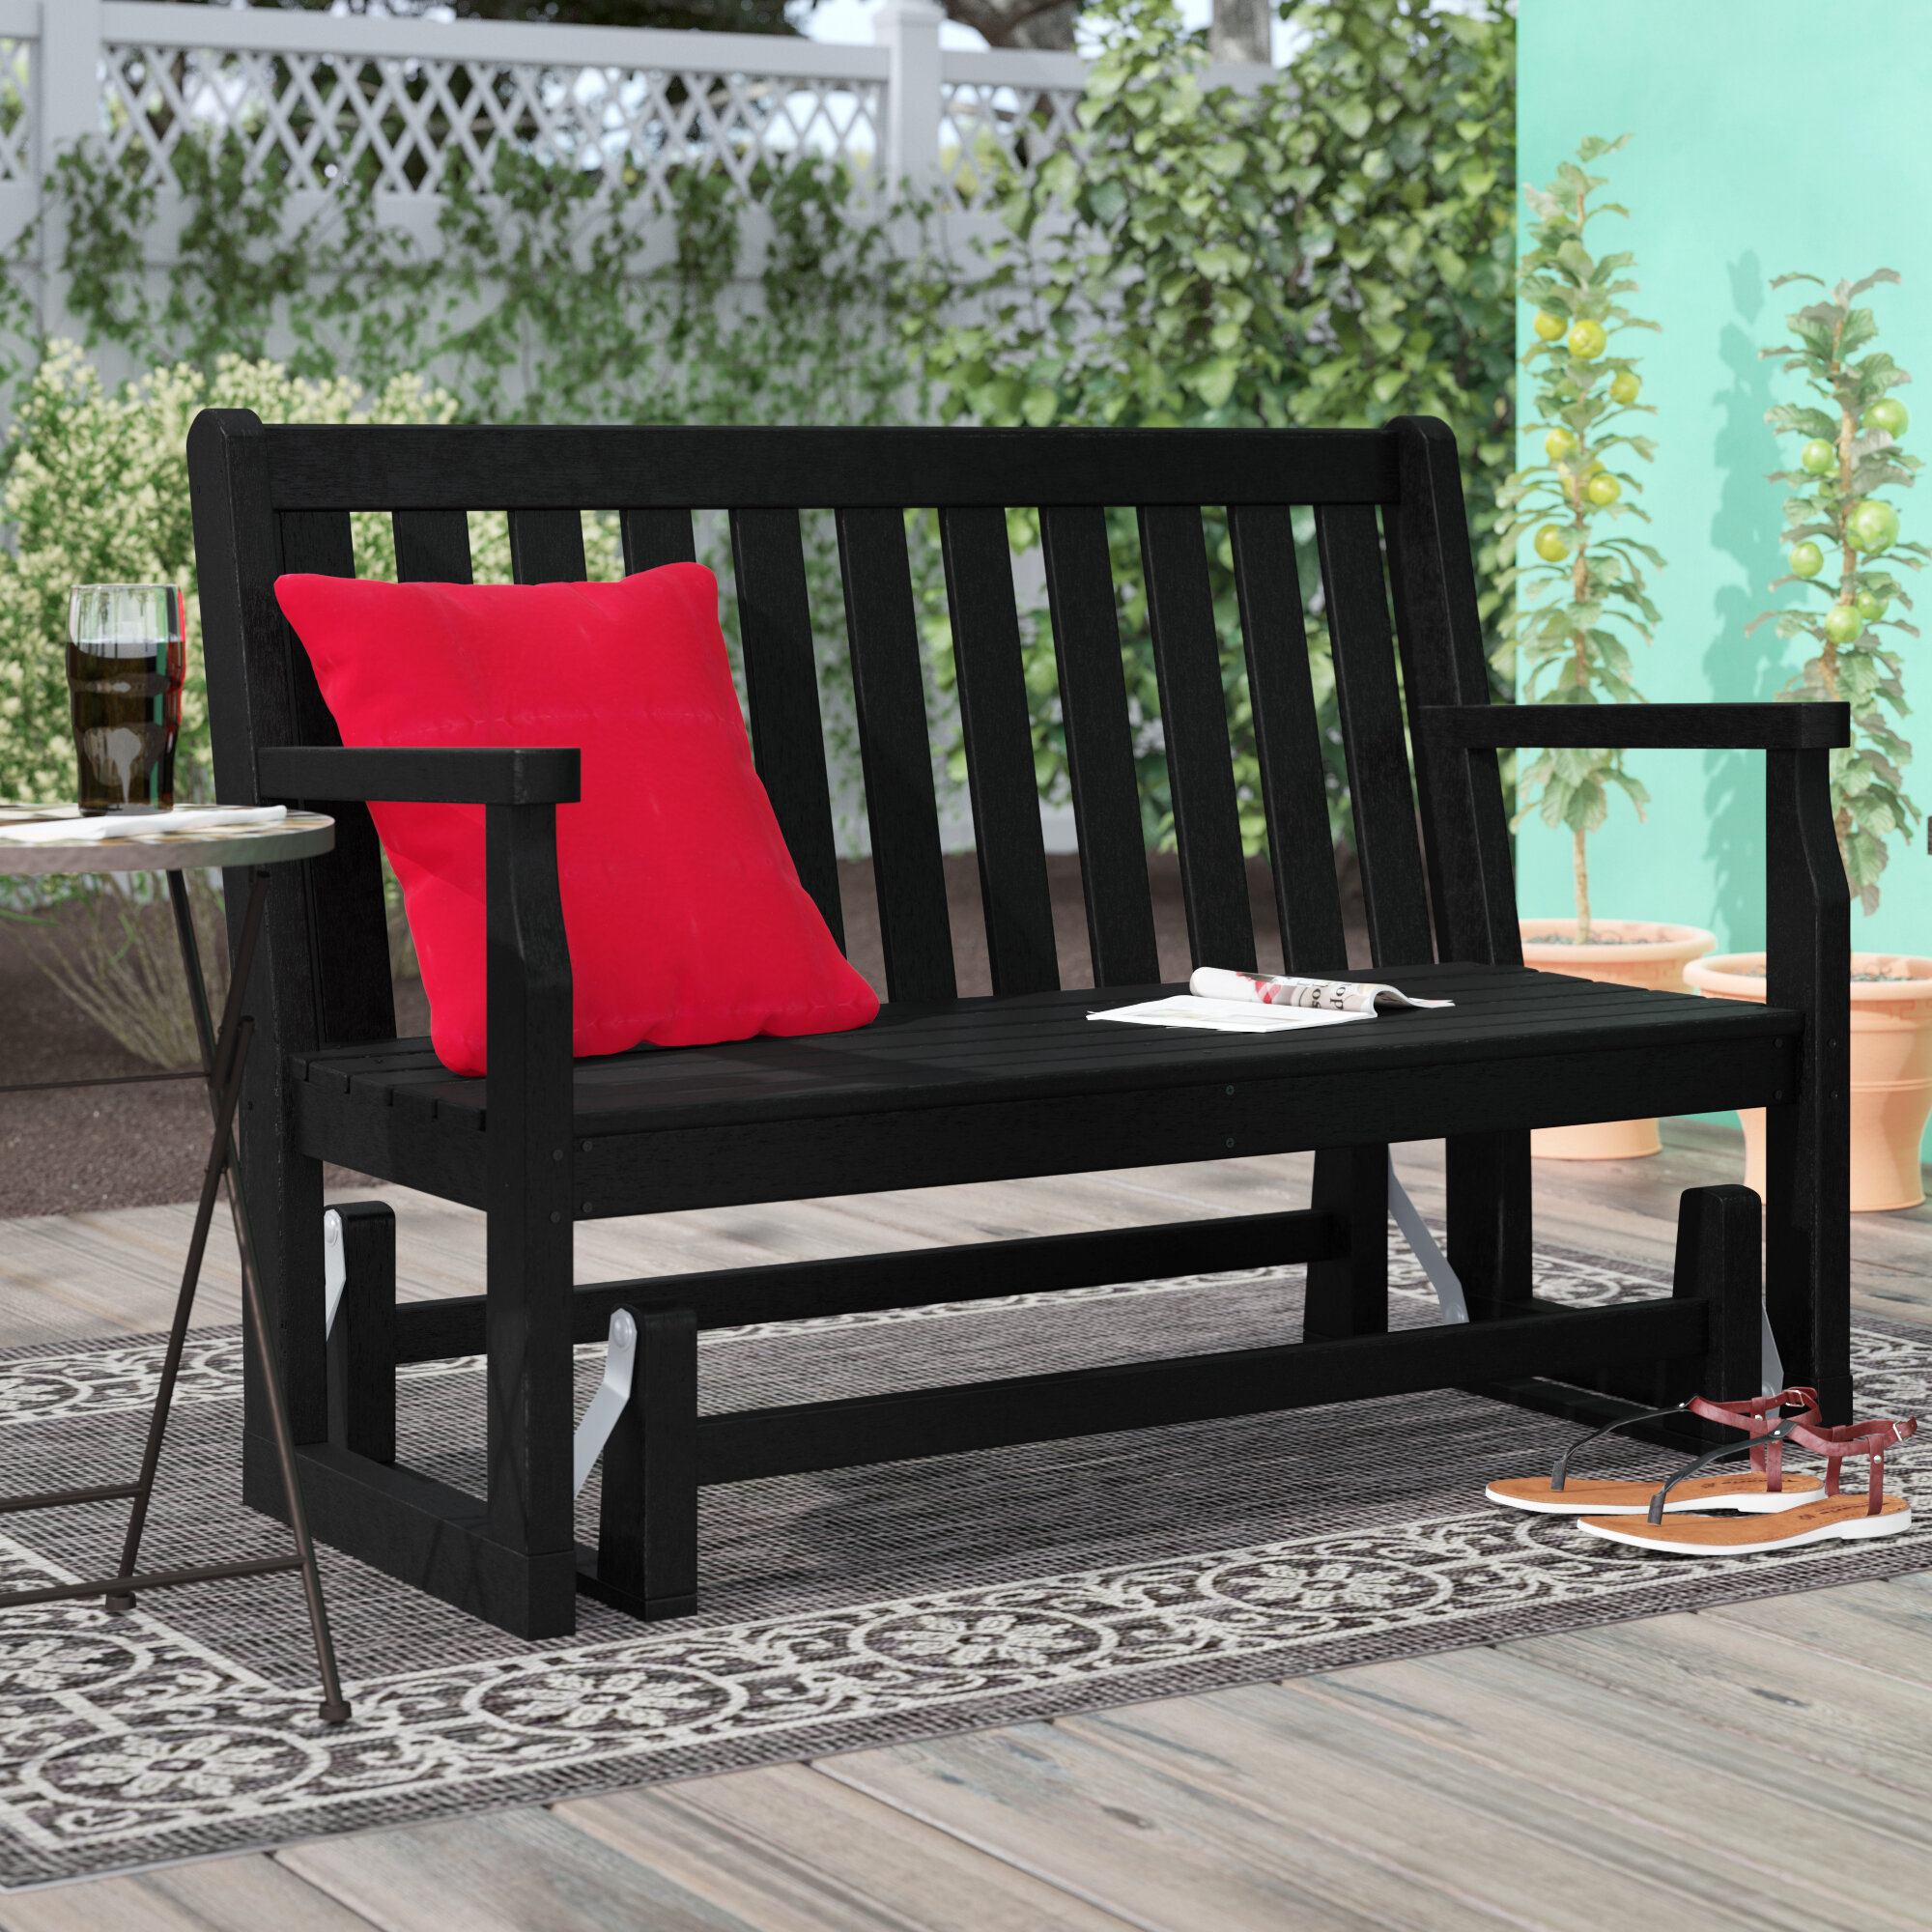 Glider Outdoor Benches You'Ll Love In 2020 | Wayfair Within Sibbi Glider Benches (View 4 of 25)